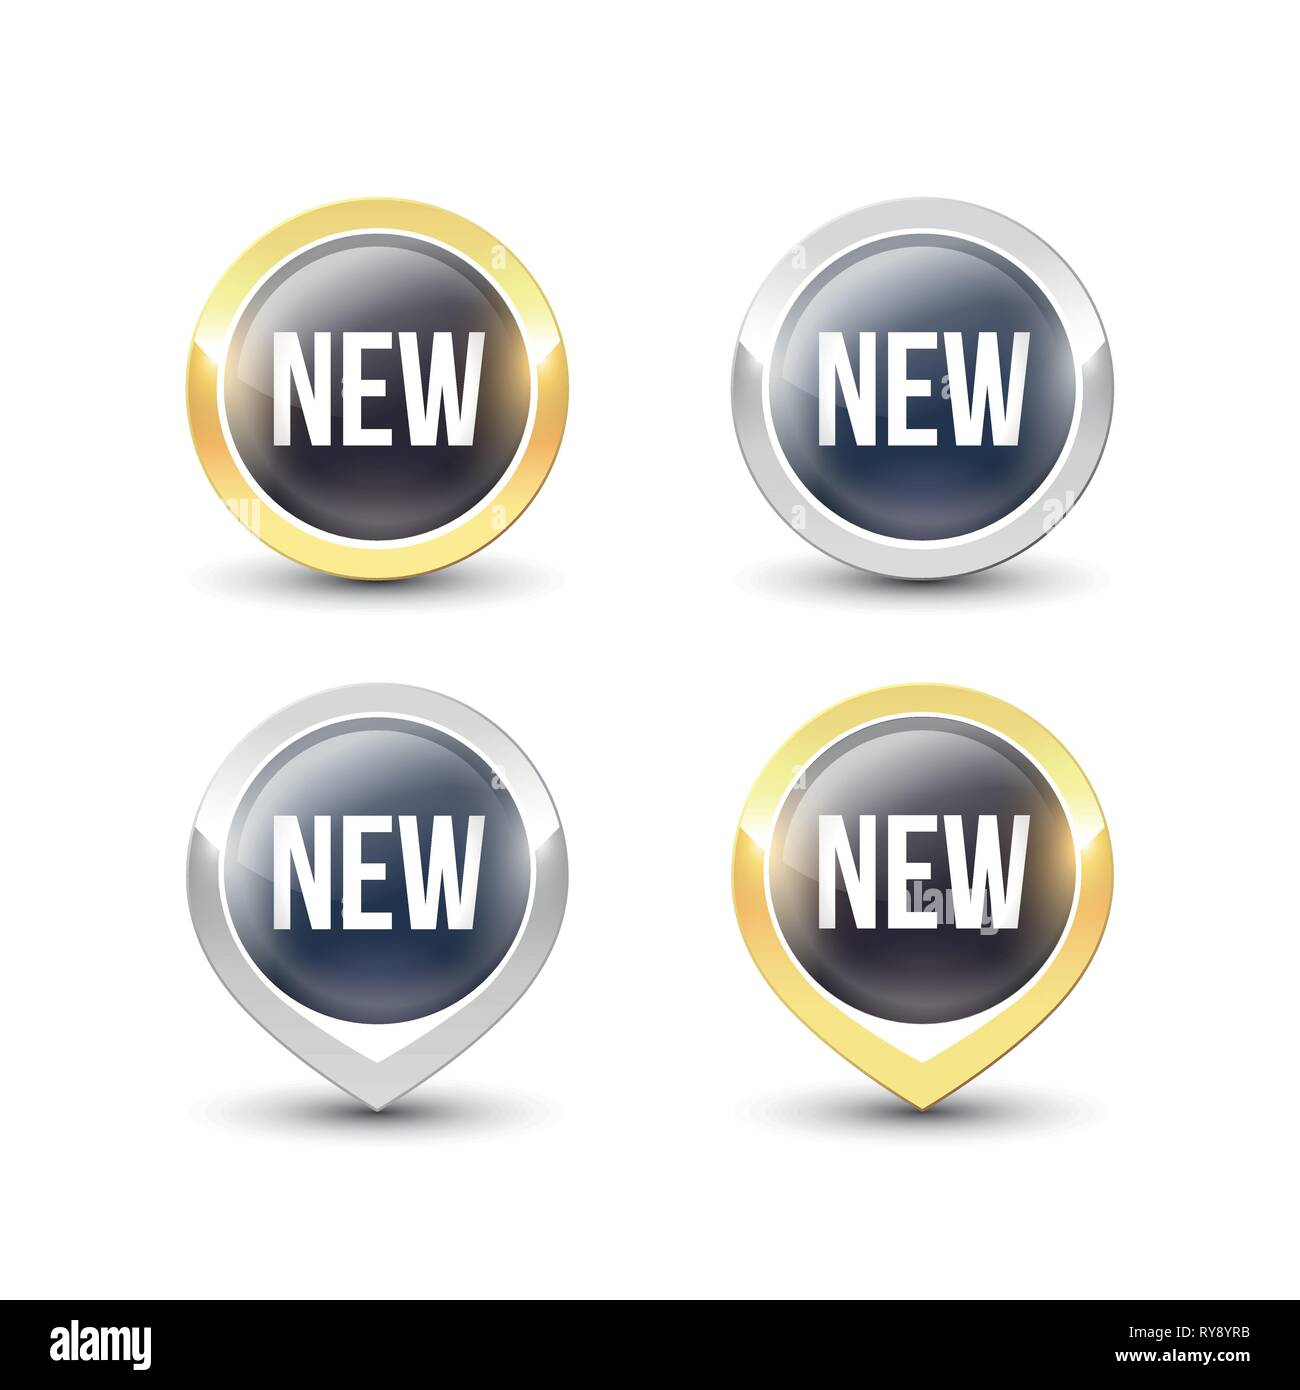 Black round NEW buttons and pointers with metallic gold and silver border. Vector label icons isolated on white background. - Stock Image